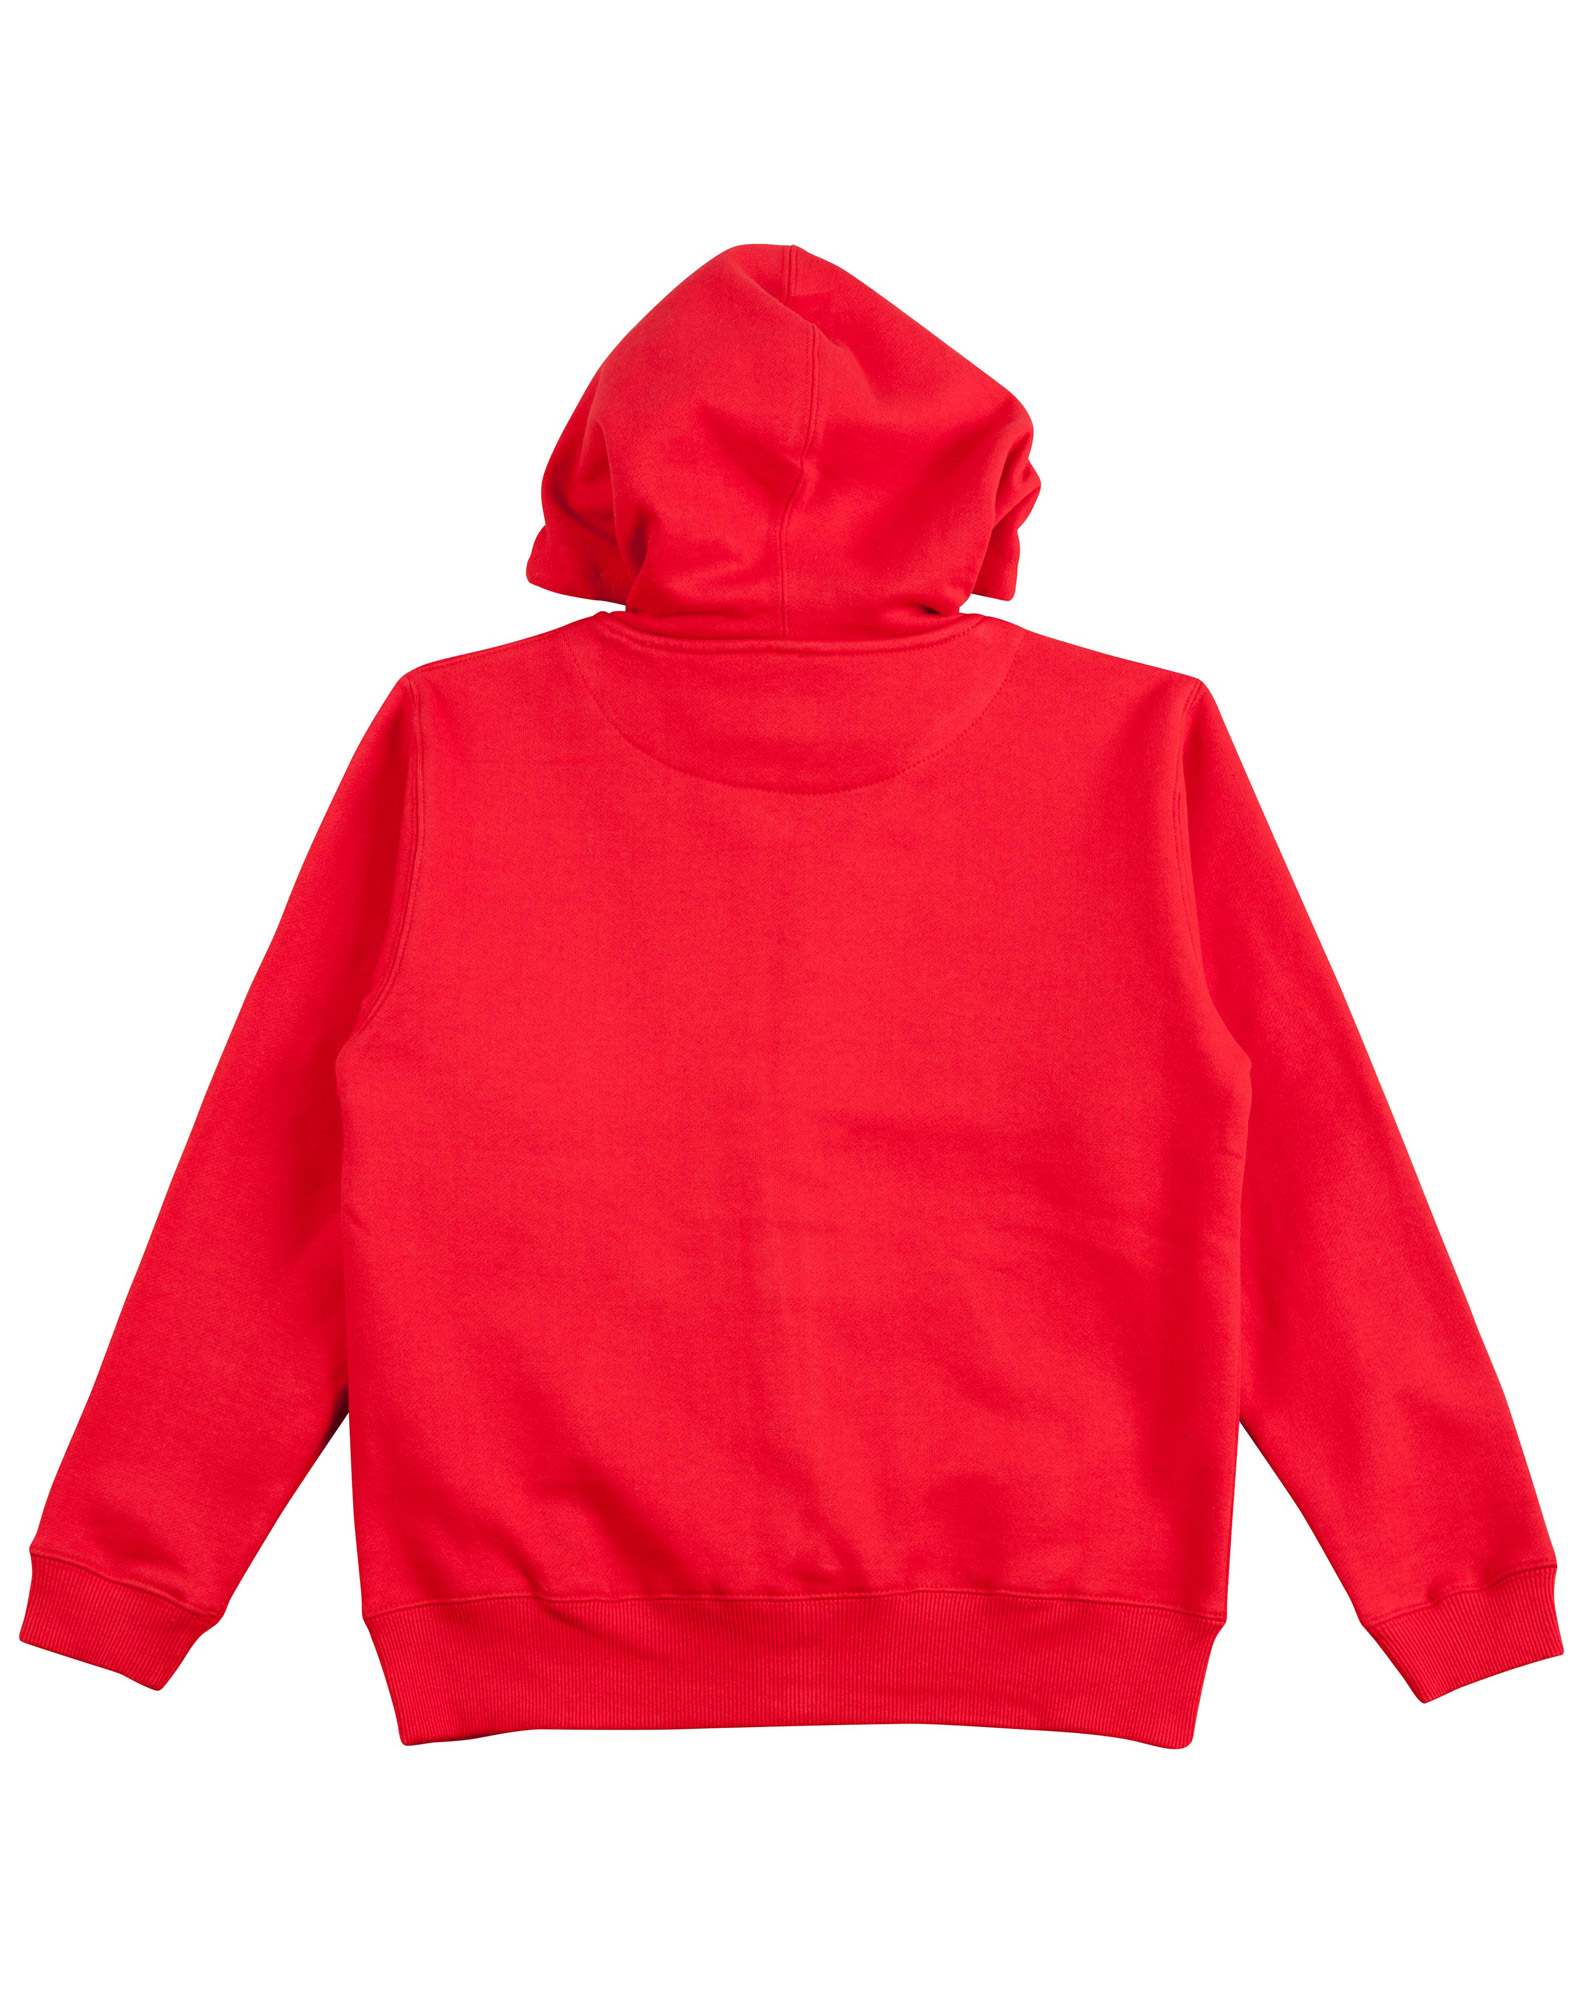 https://s3-ap-southeast-1.amazonaws.com/ws-imgs/OUTWEAR/FL03K_Red_Back_l.jpg